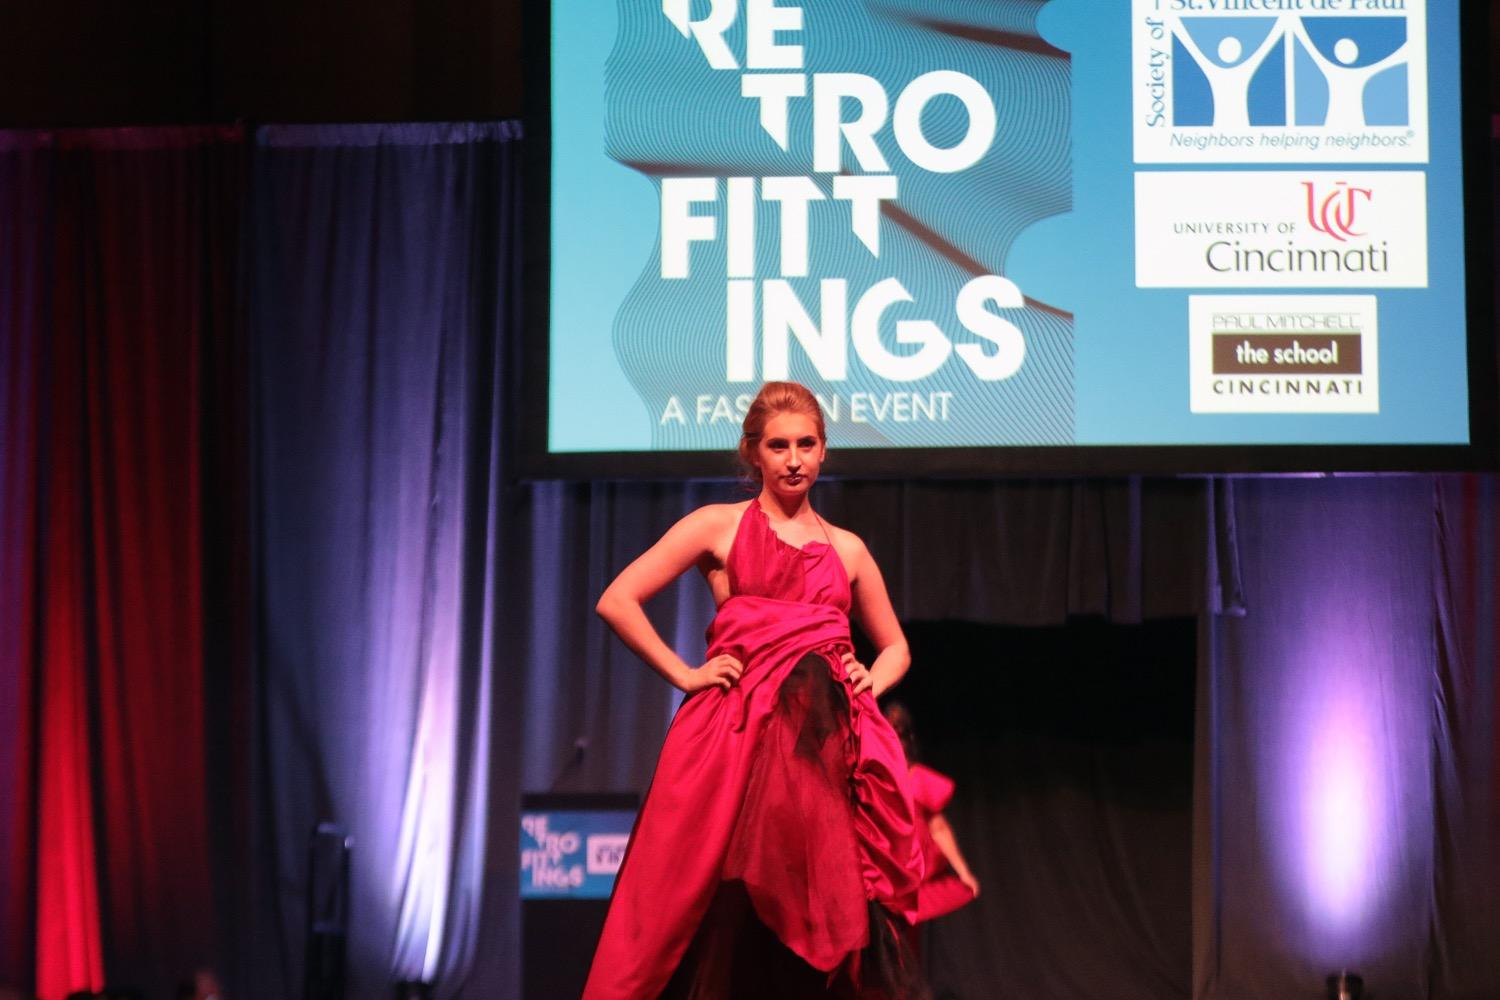 The RetroFittings fashion show was held on Saturday, Oct. 14 at the Duke Energy Convention center, and it was a huge success! University of Cincinnati DAAP students created avant-garde runway fashions from thrift store items. Meanwhile, guests had the opportunity to peruse the RetroFittings curated boutique for bargains on some of the world's finest clothes and accessories. / Image: Tony Tribble // Published: 10.18.17